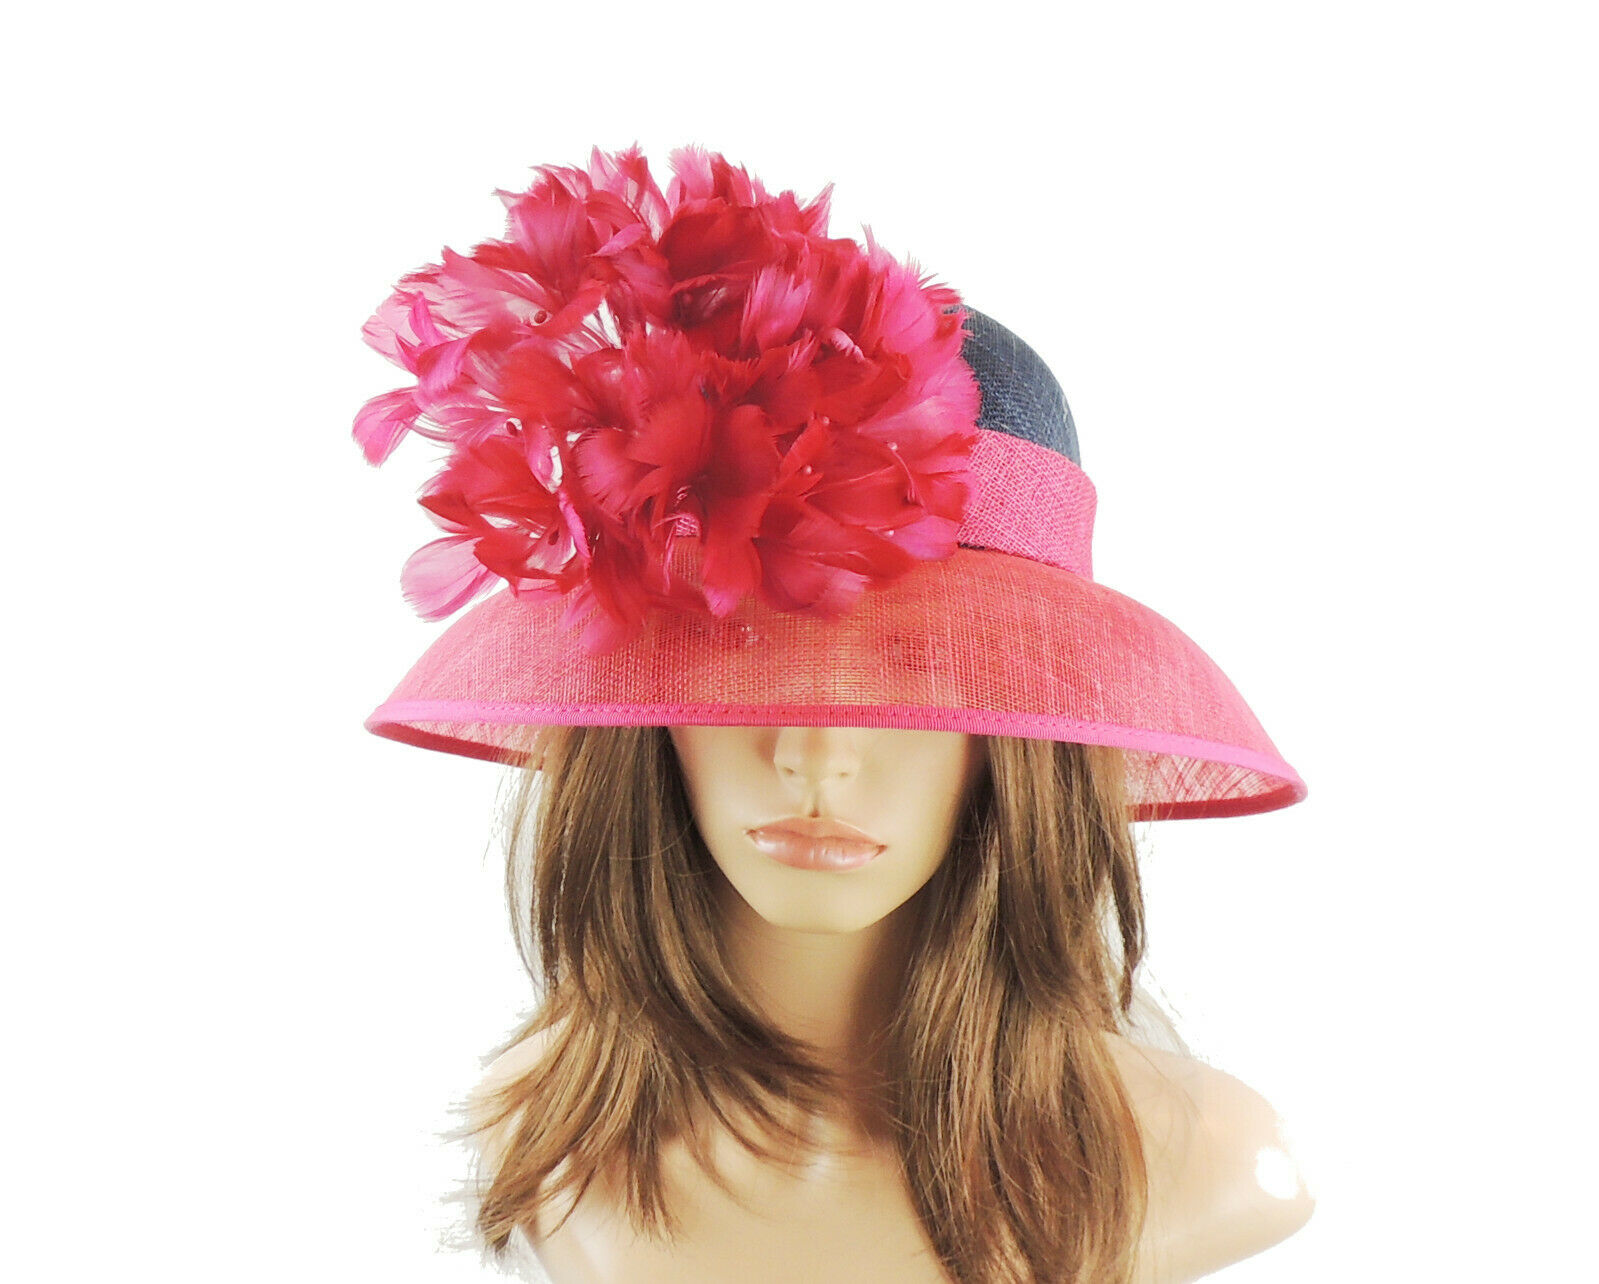 Fuchsia Navy Ascot Hat for Weddings, Ascot, Melbourne Cup HA